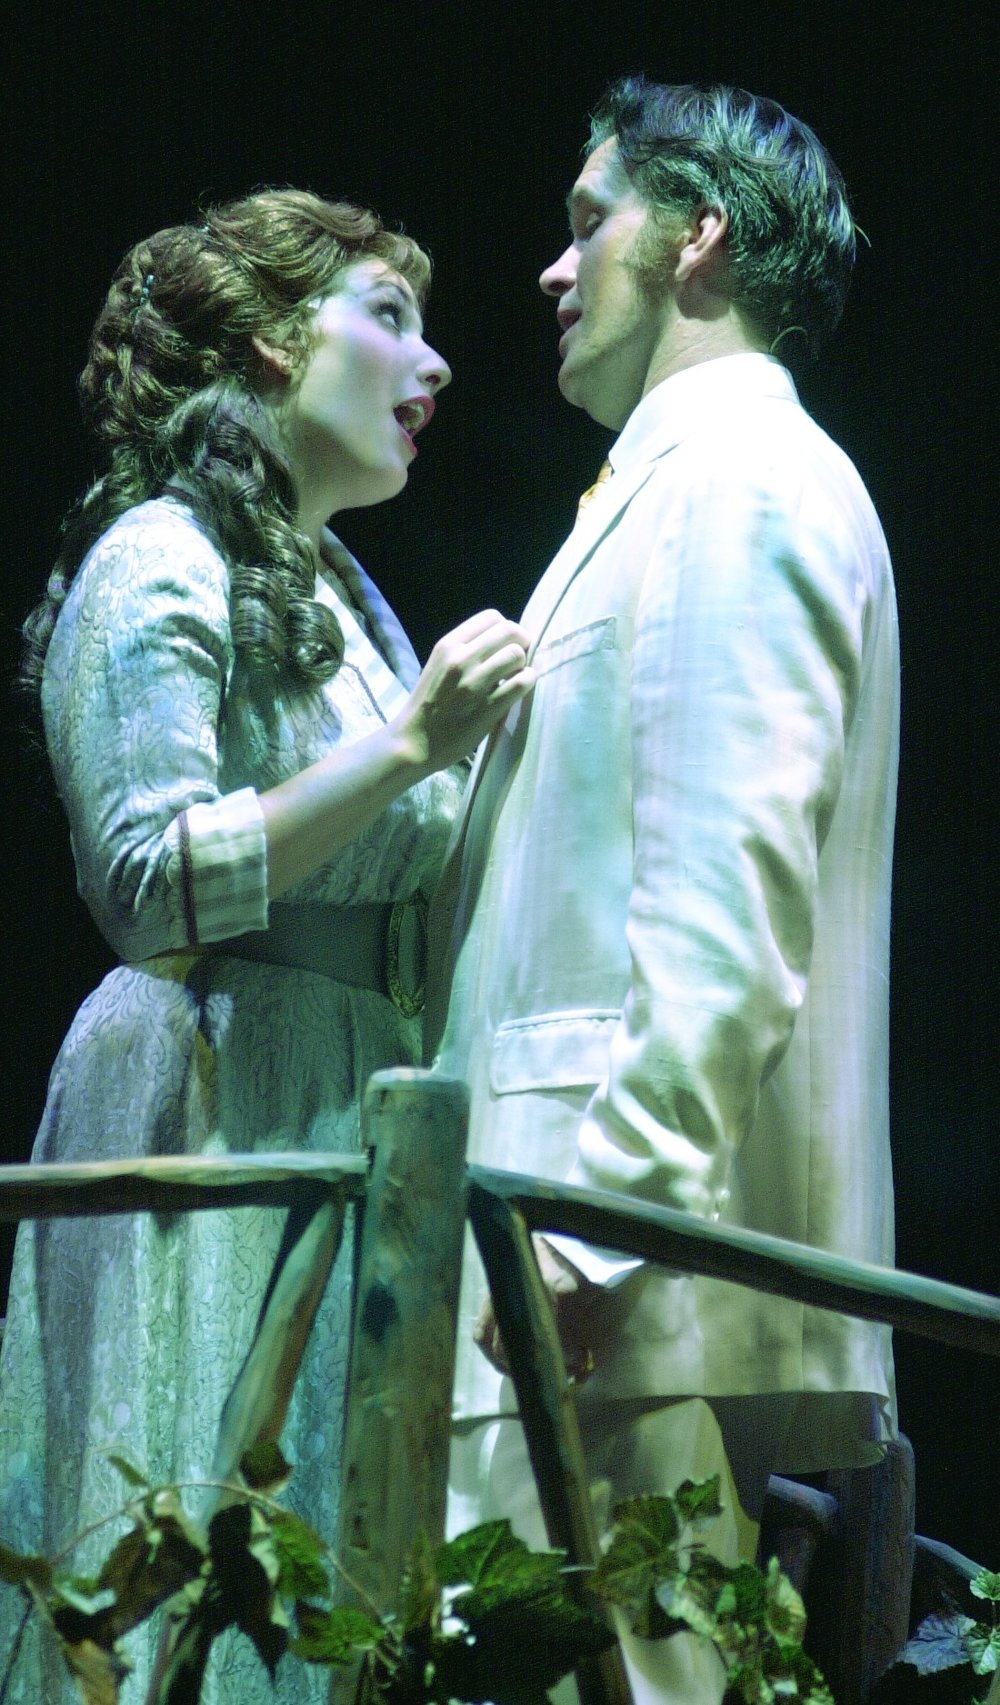 as Marian with George Dvorsky, The Music Man, Chautauqua Opera (photo by Roger Coda)